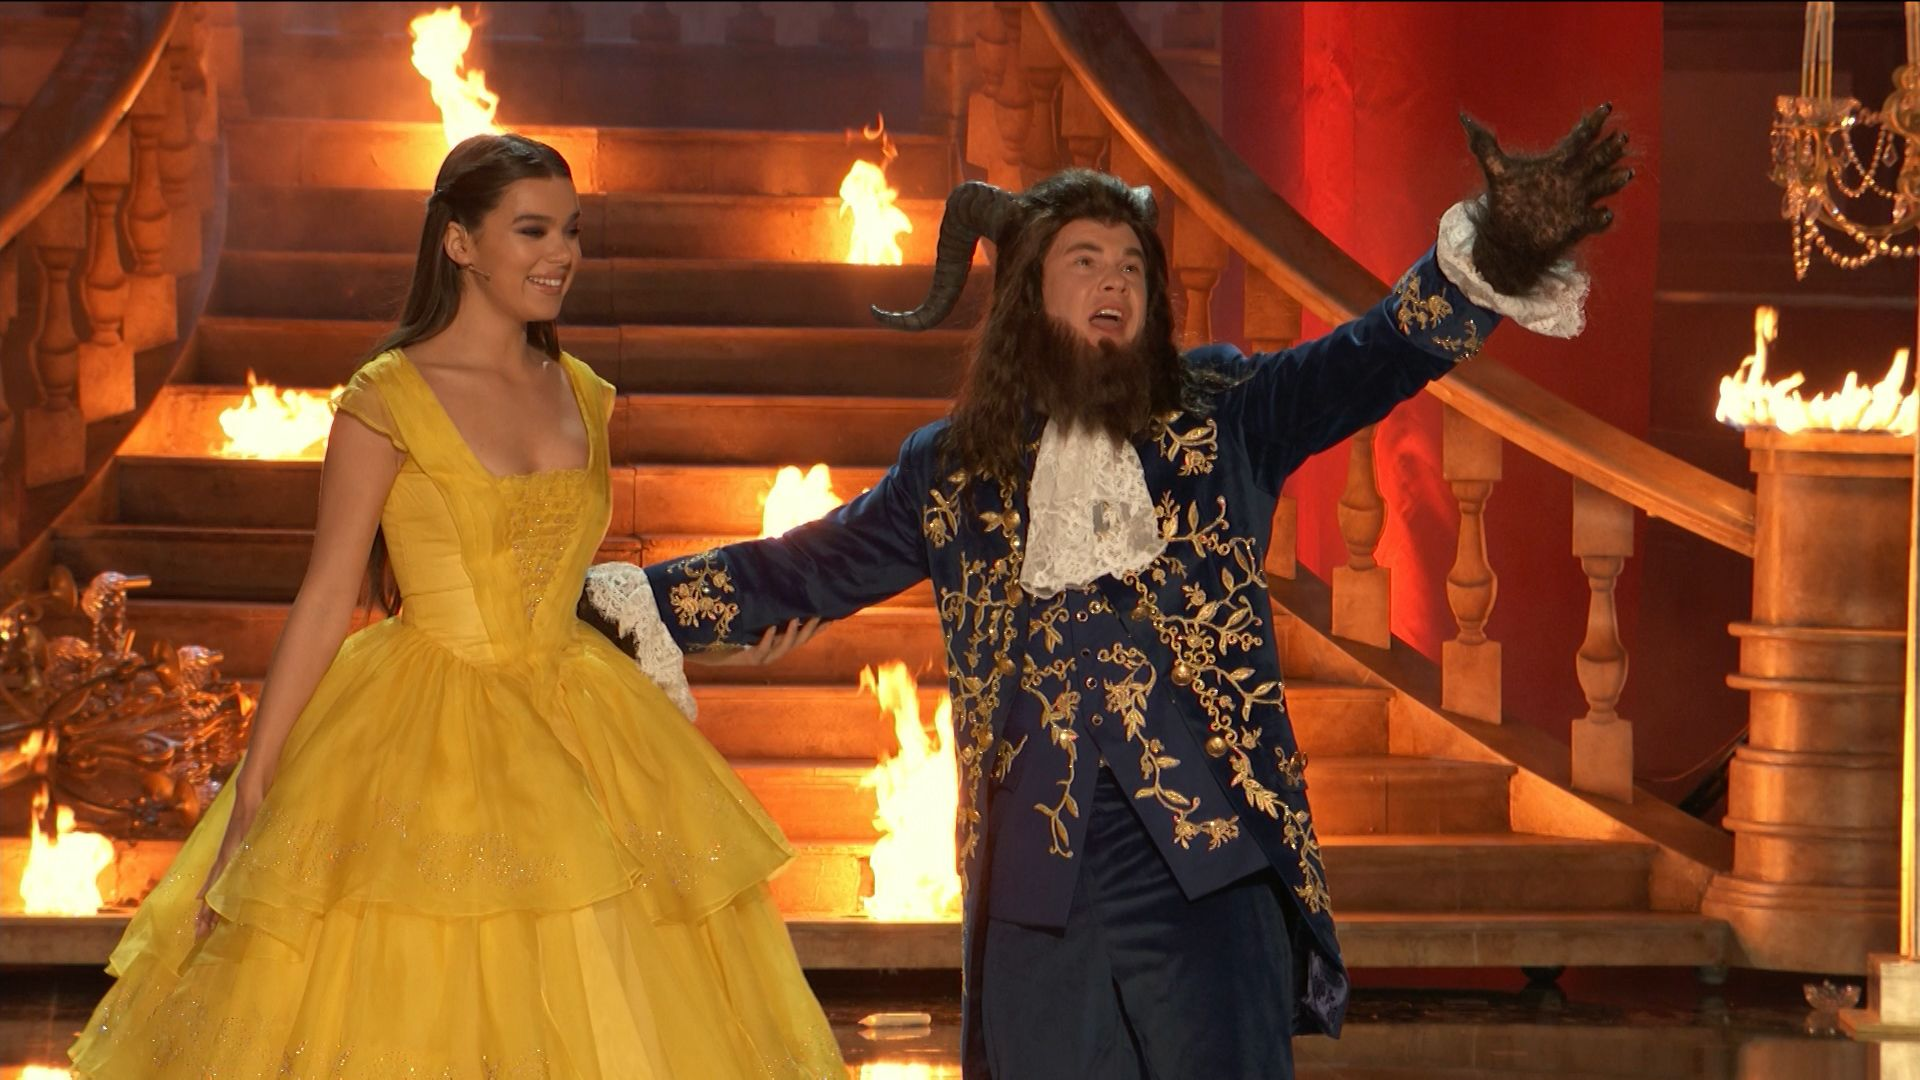 Beauty and the beast dating show